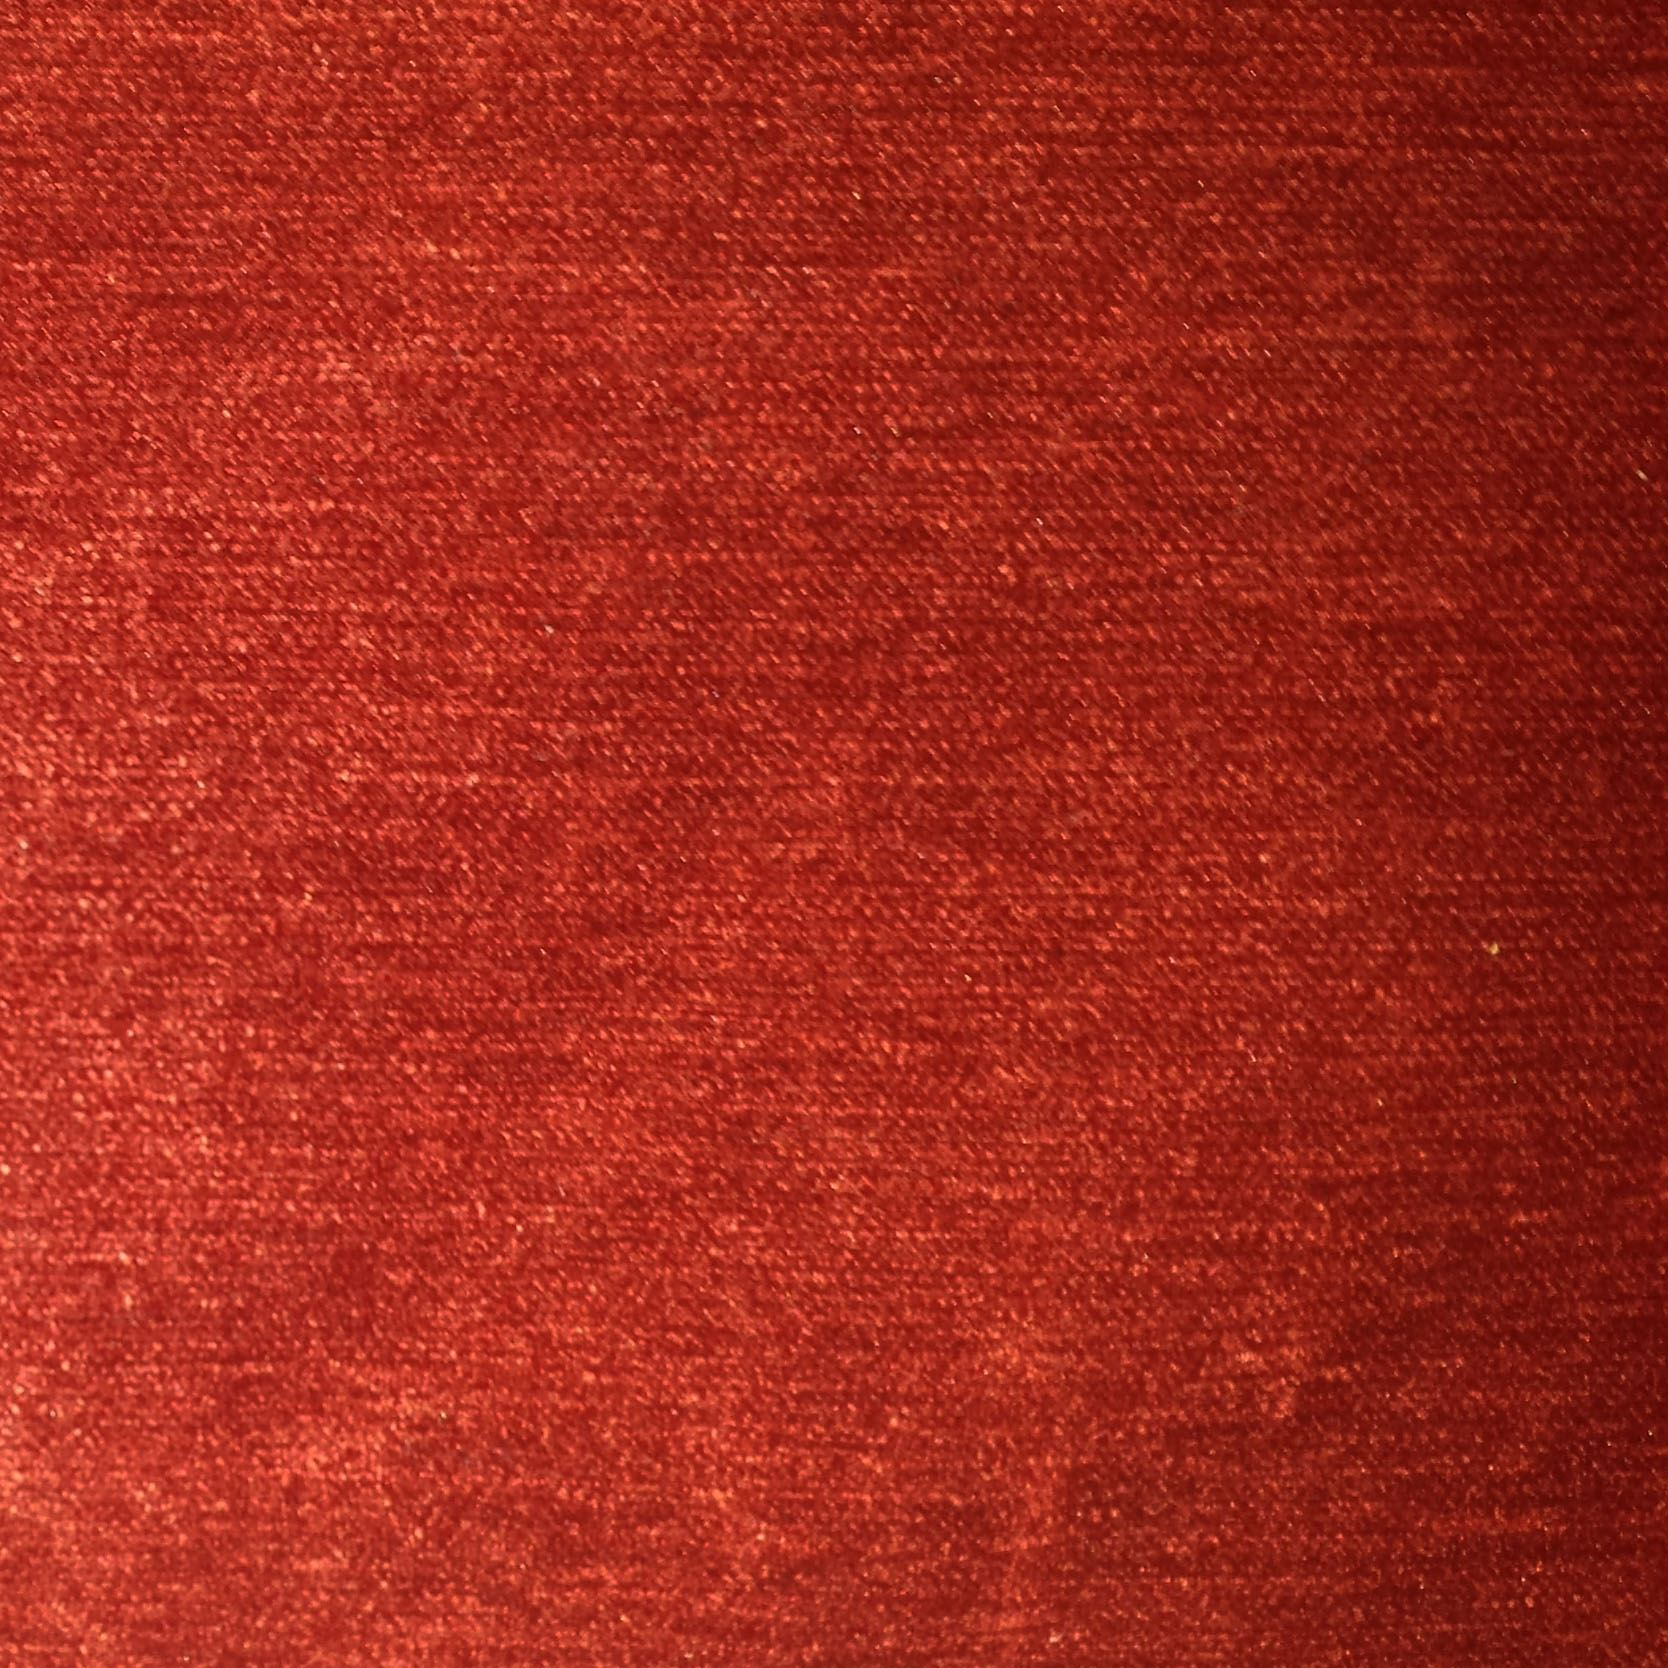 Red Velvet Texture Luxury Soft Plain Heavy Weight Cotton Crushed Pure Upholstery Fabric